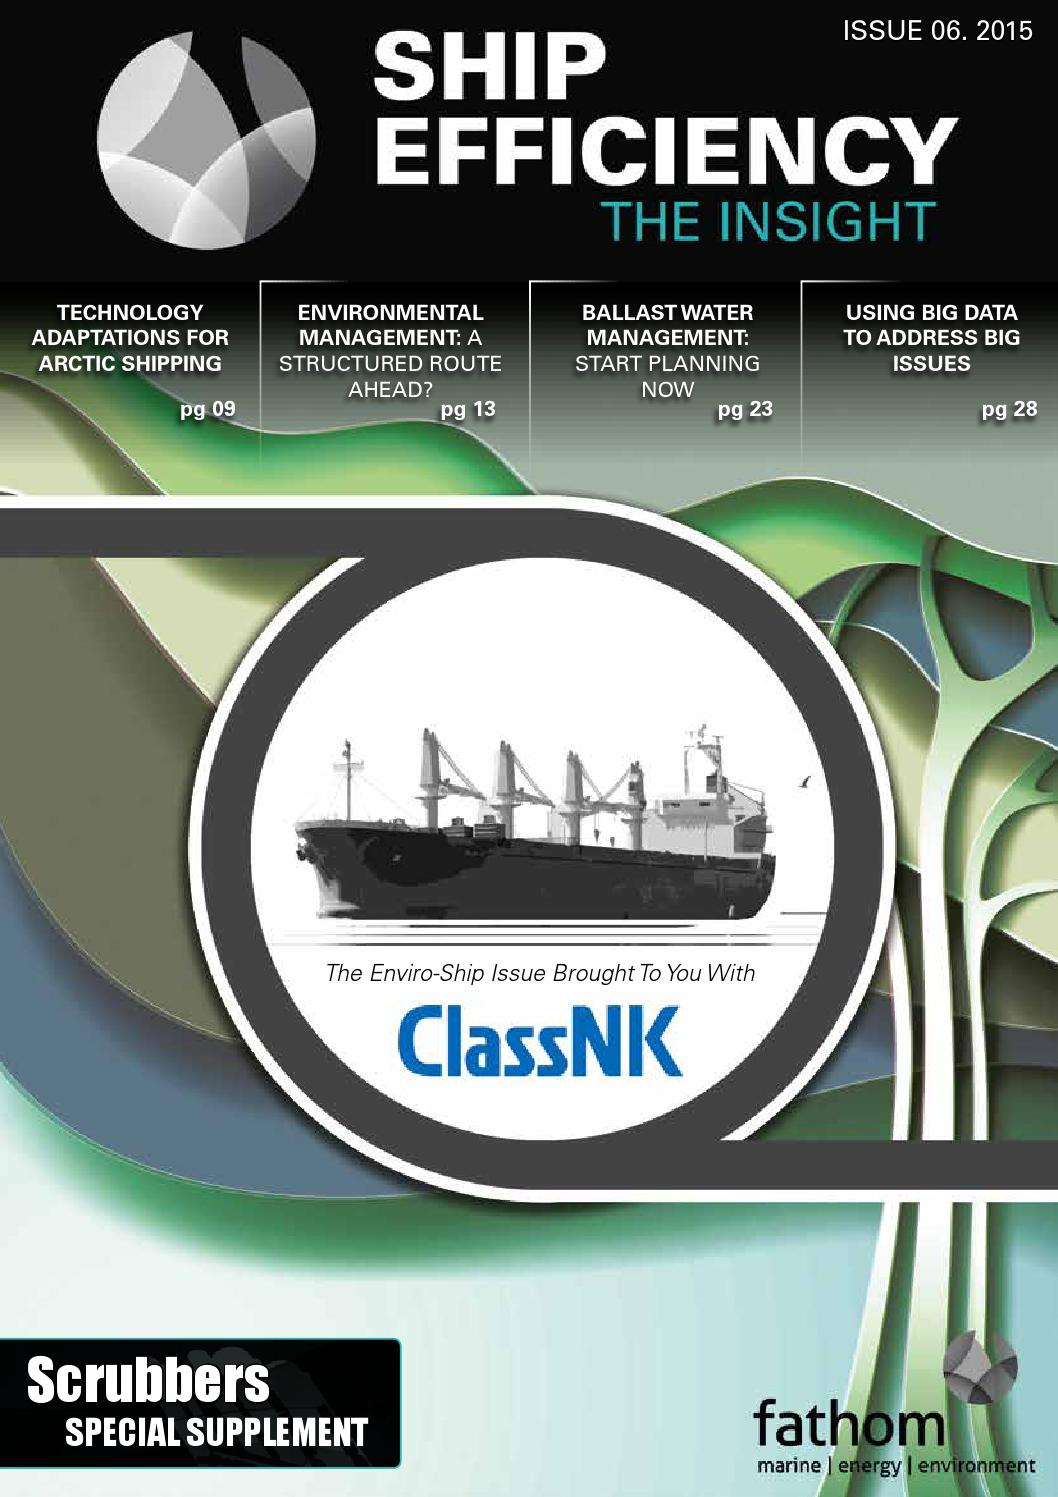 Big Ships Engine Rooms: Ship Efficiency: The Insight Issue #06 By Fathom Maritime